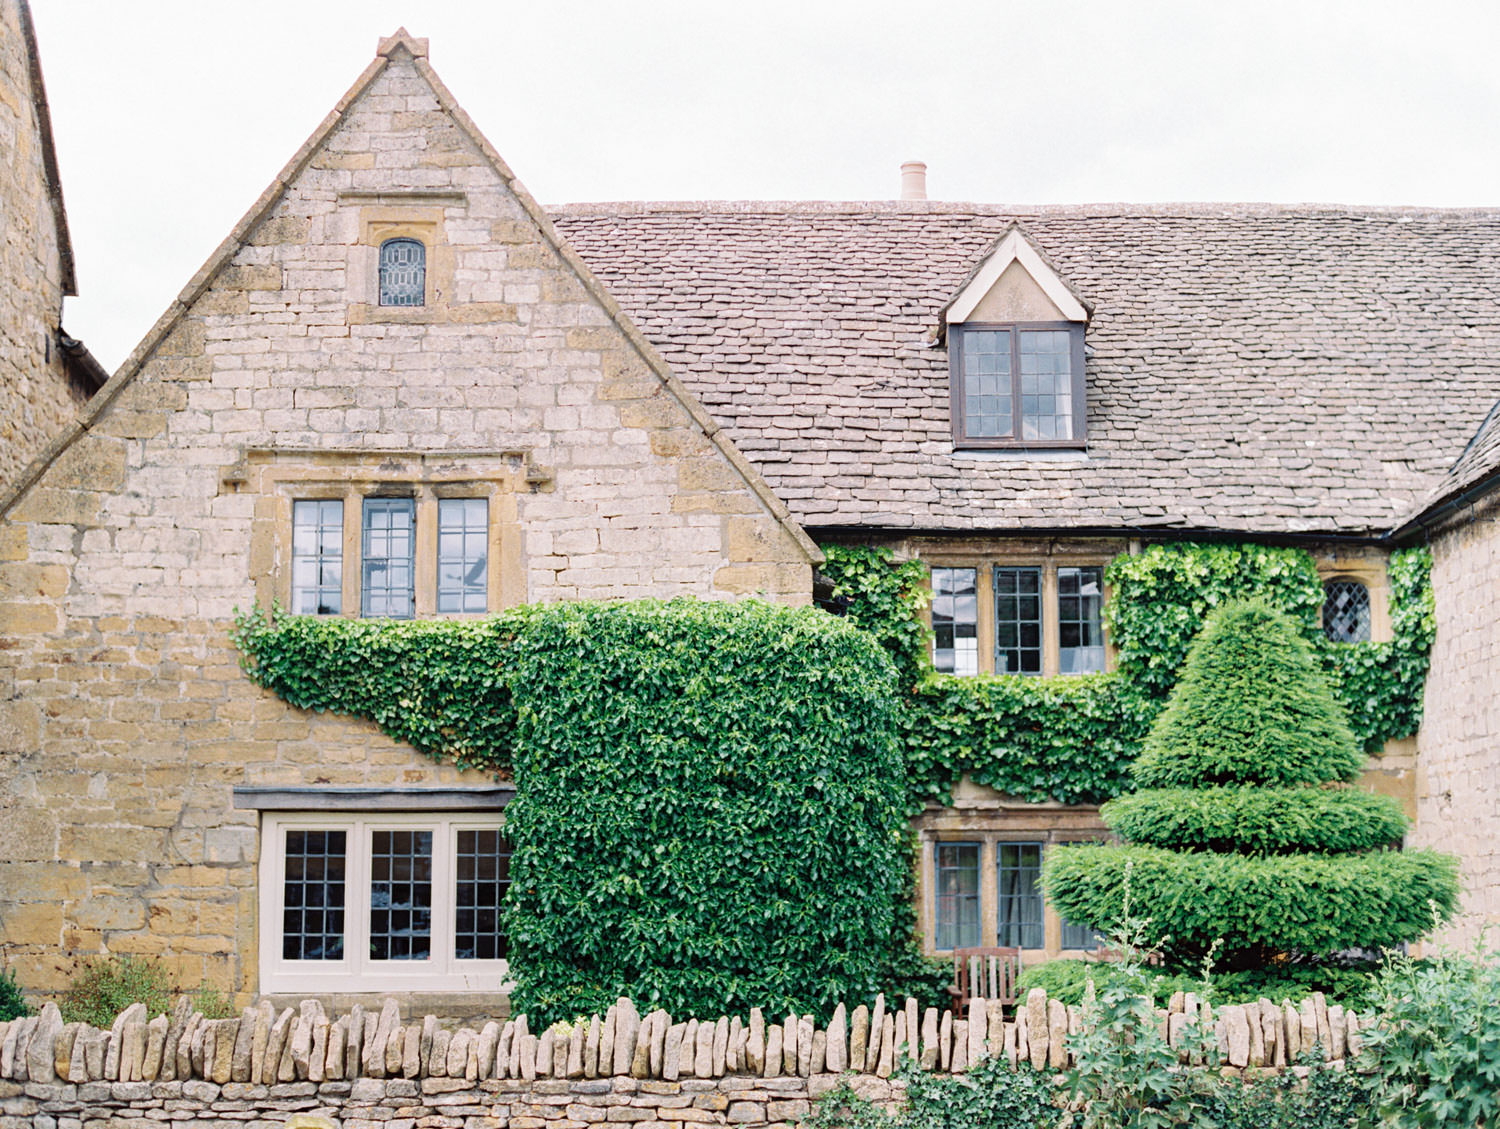 Broadway village house in the Cotswolds. Flutter Magazine Retreat in the Cotswolds at Norton Hall in Mickleton, England. Photo by Cavin Elizabeth Photography on film